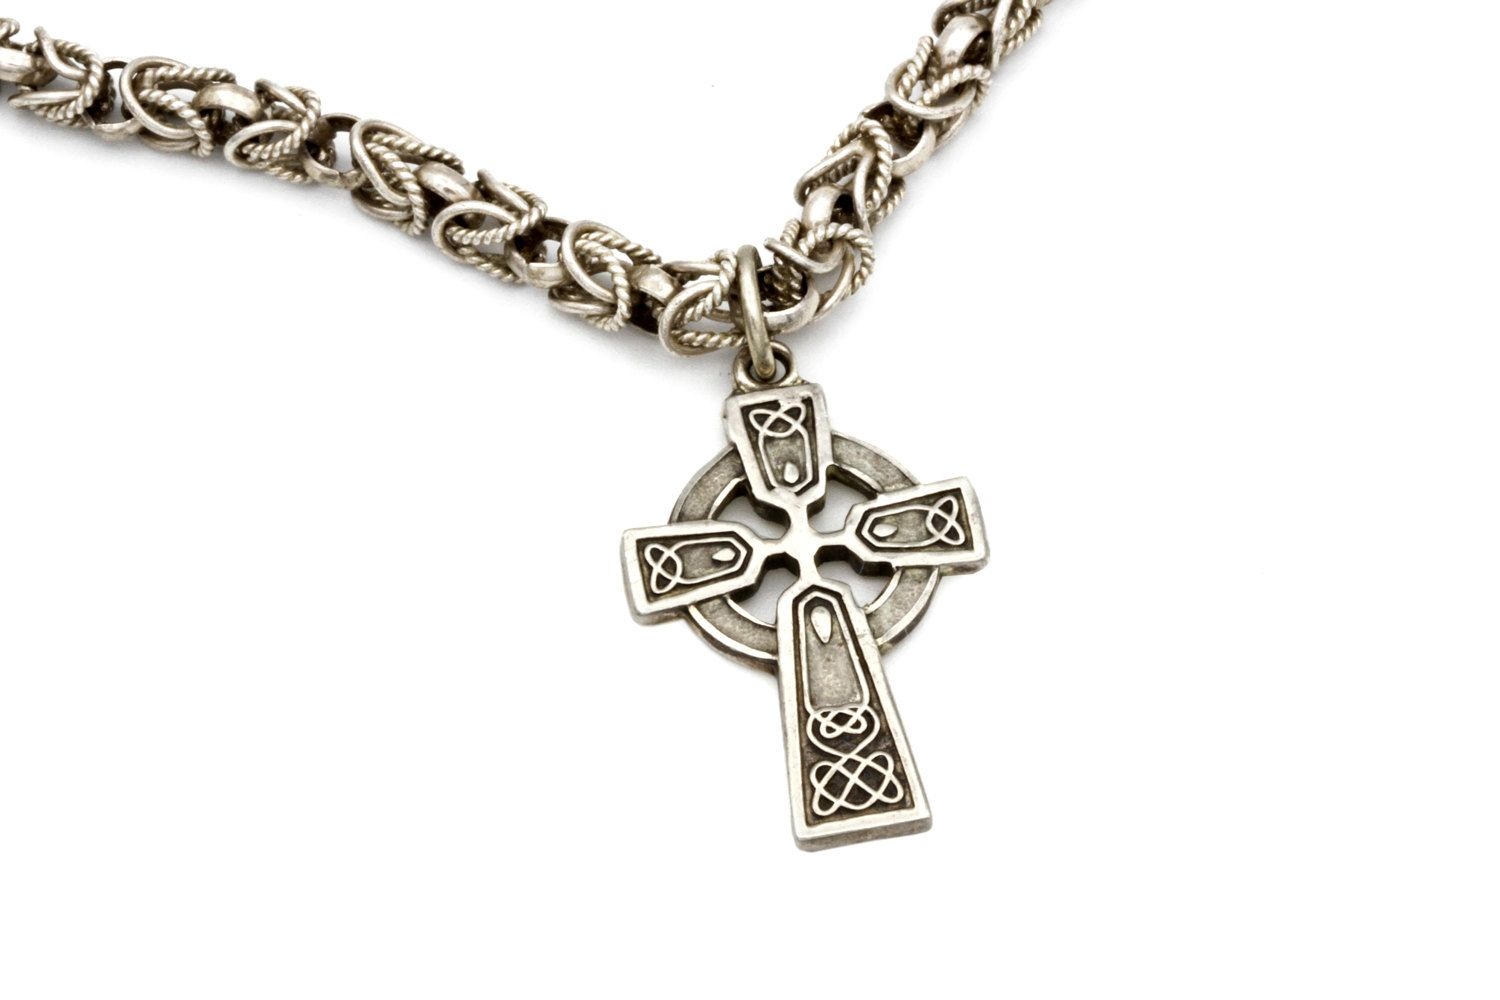 Celtic sun cross necklace celtic irish cross vintage necklaces celtic sun cross necklace celtic irish cross pendant solar wheel cross pendant byzantine aloadofball Image collections